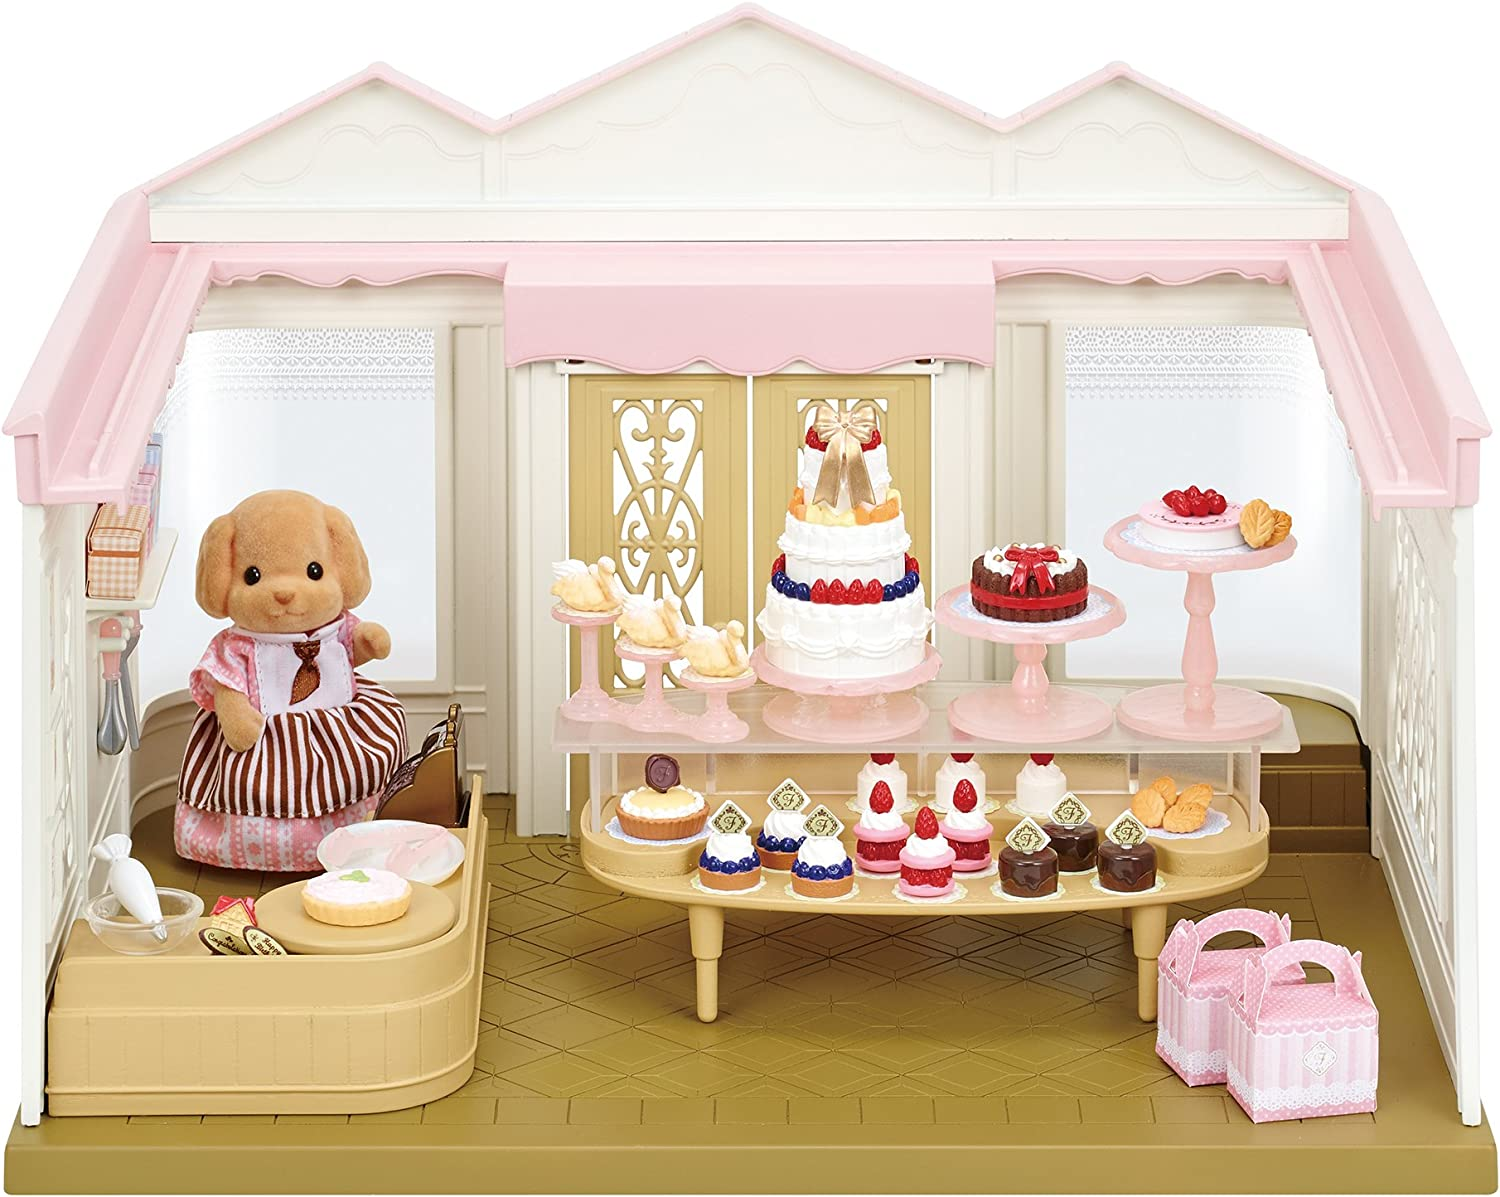 Top 15 Best Calico Critters (2020 Reviews & Buying Guide) 9